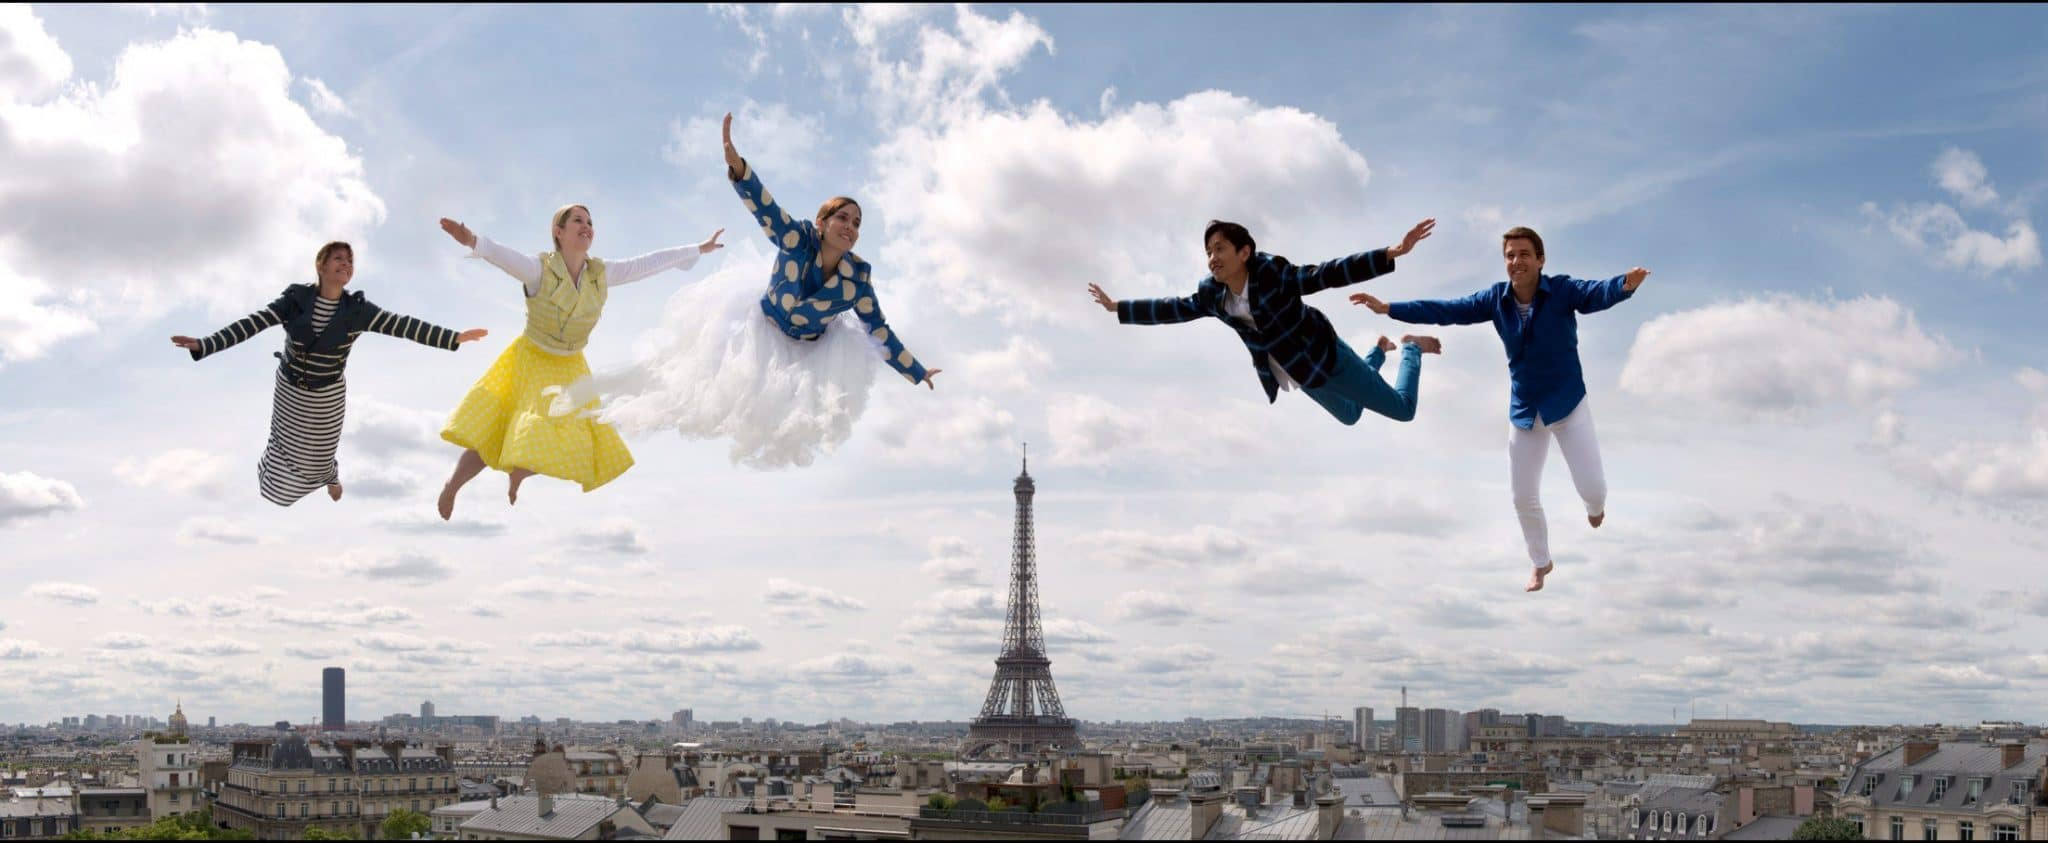 Paris Photo 2015 Li Wei Visions